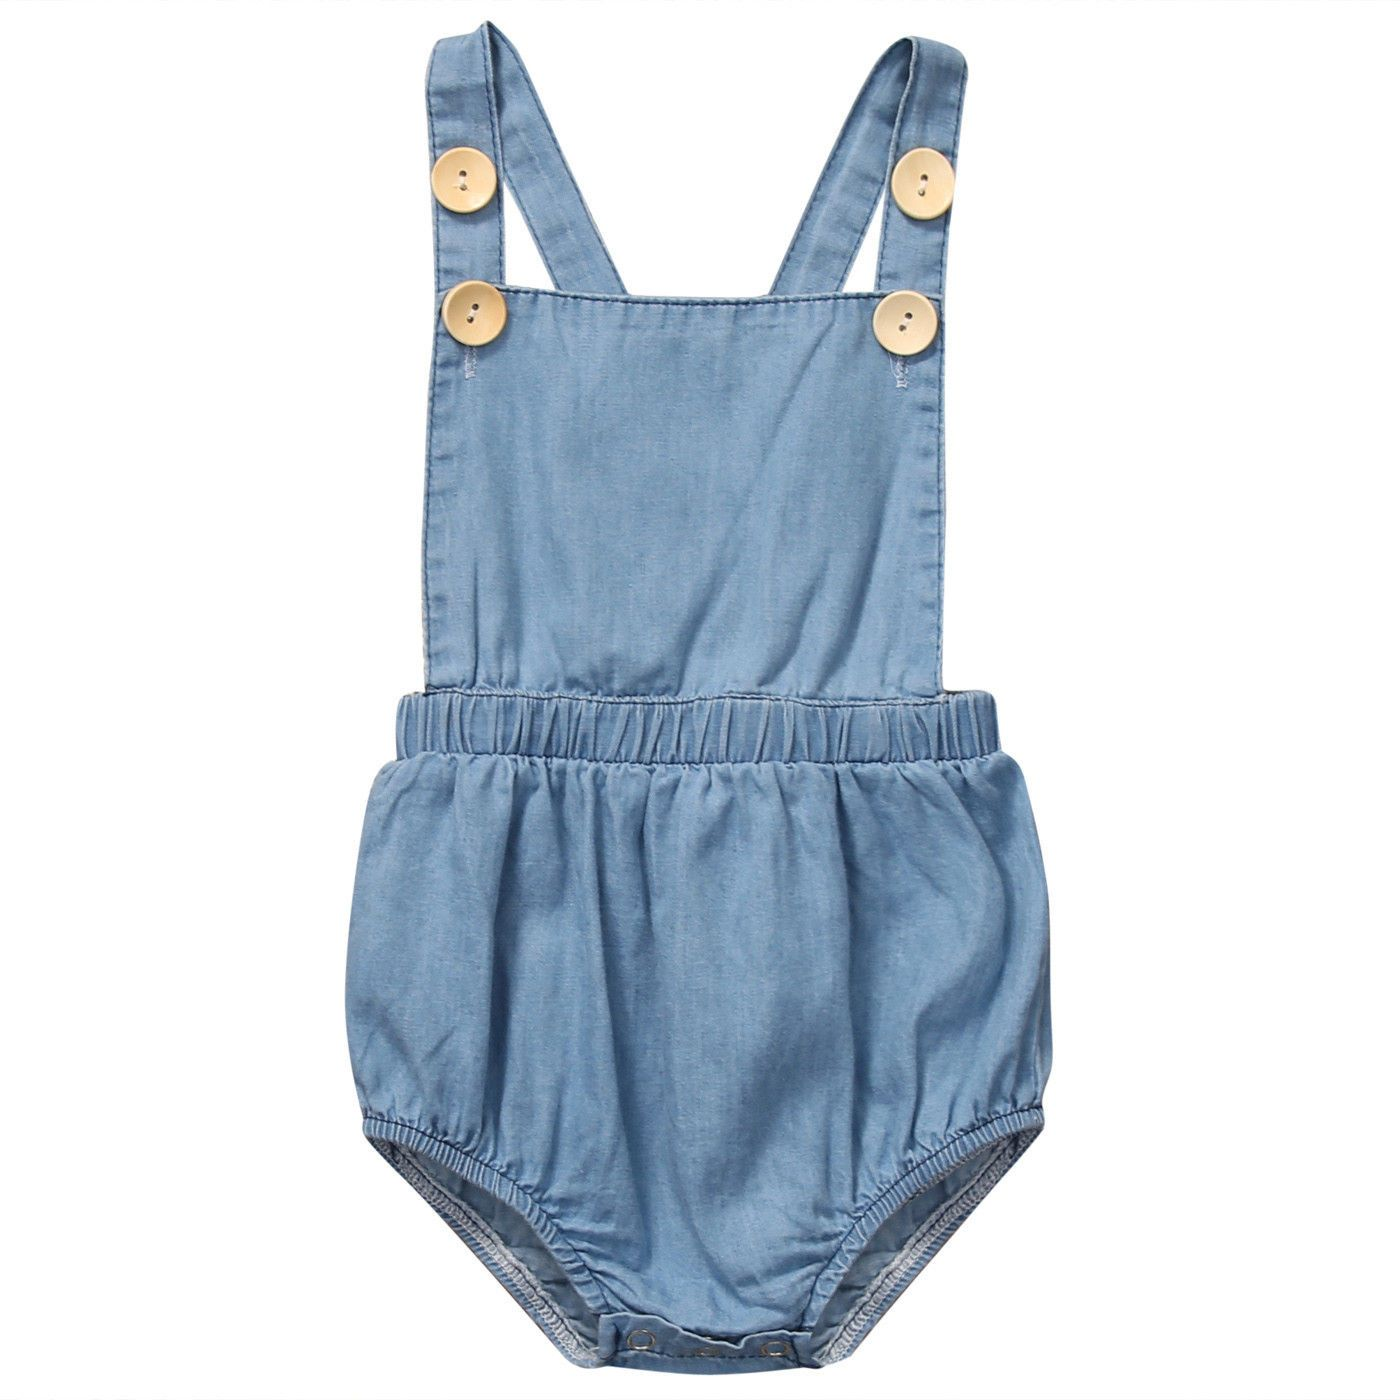 3aa0590ae Baby Girls Sleeveless Cute Denim Tops Jumpsuit Outfit Sunsuit ...